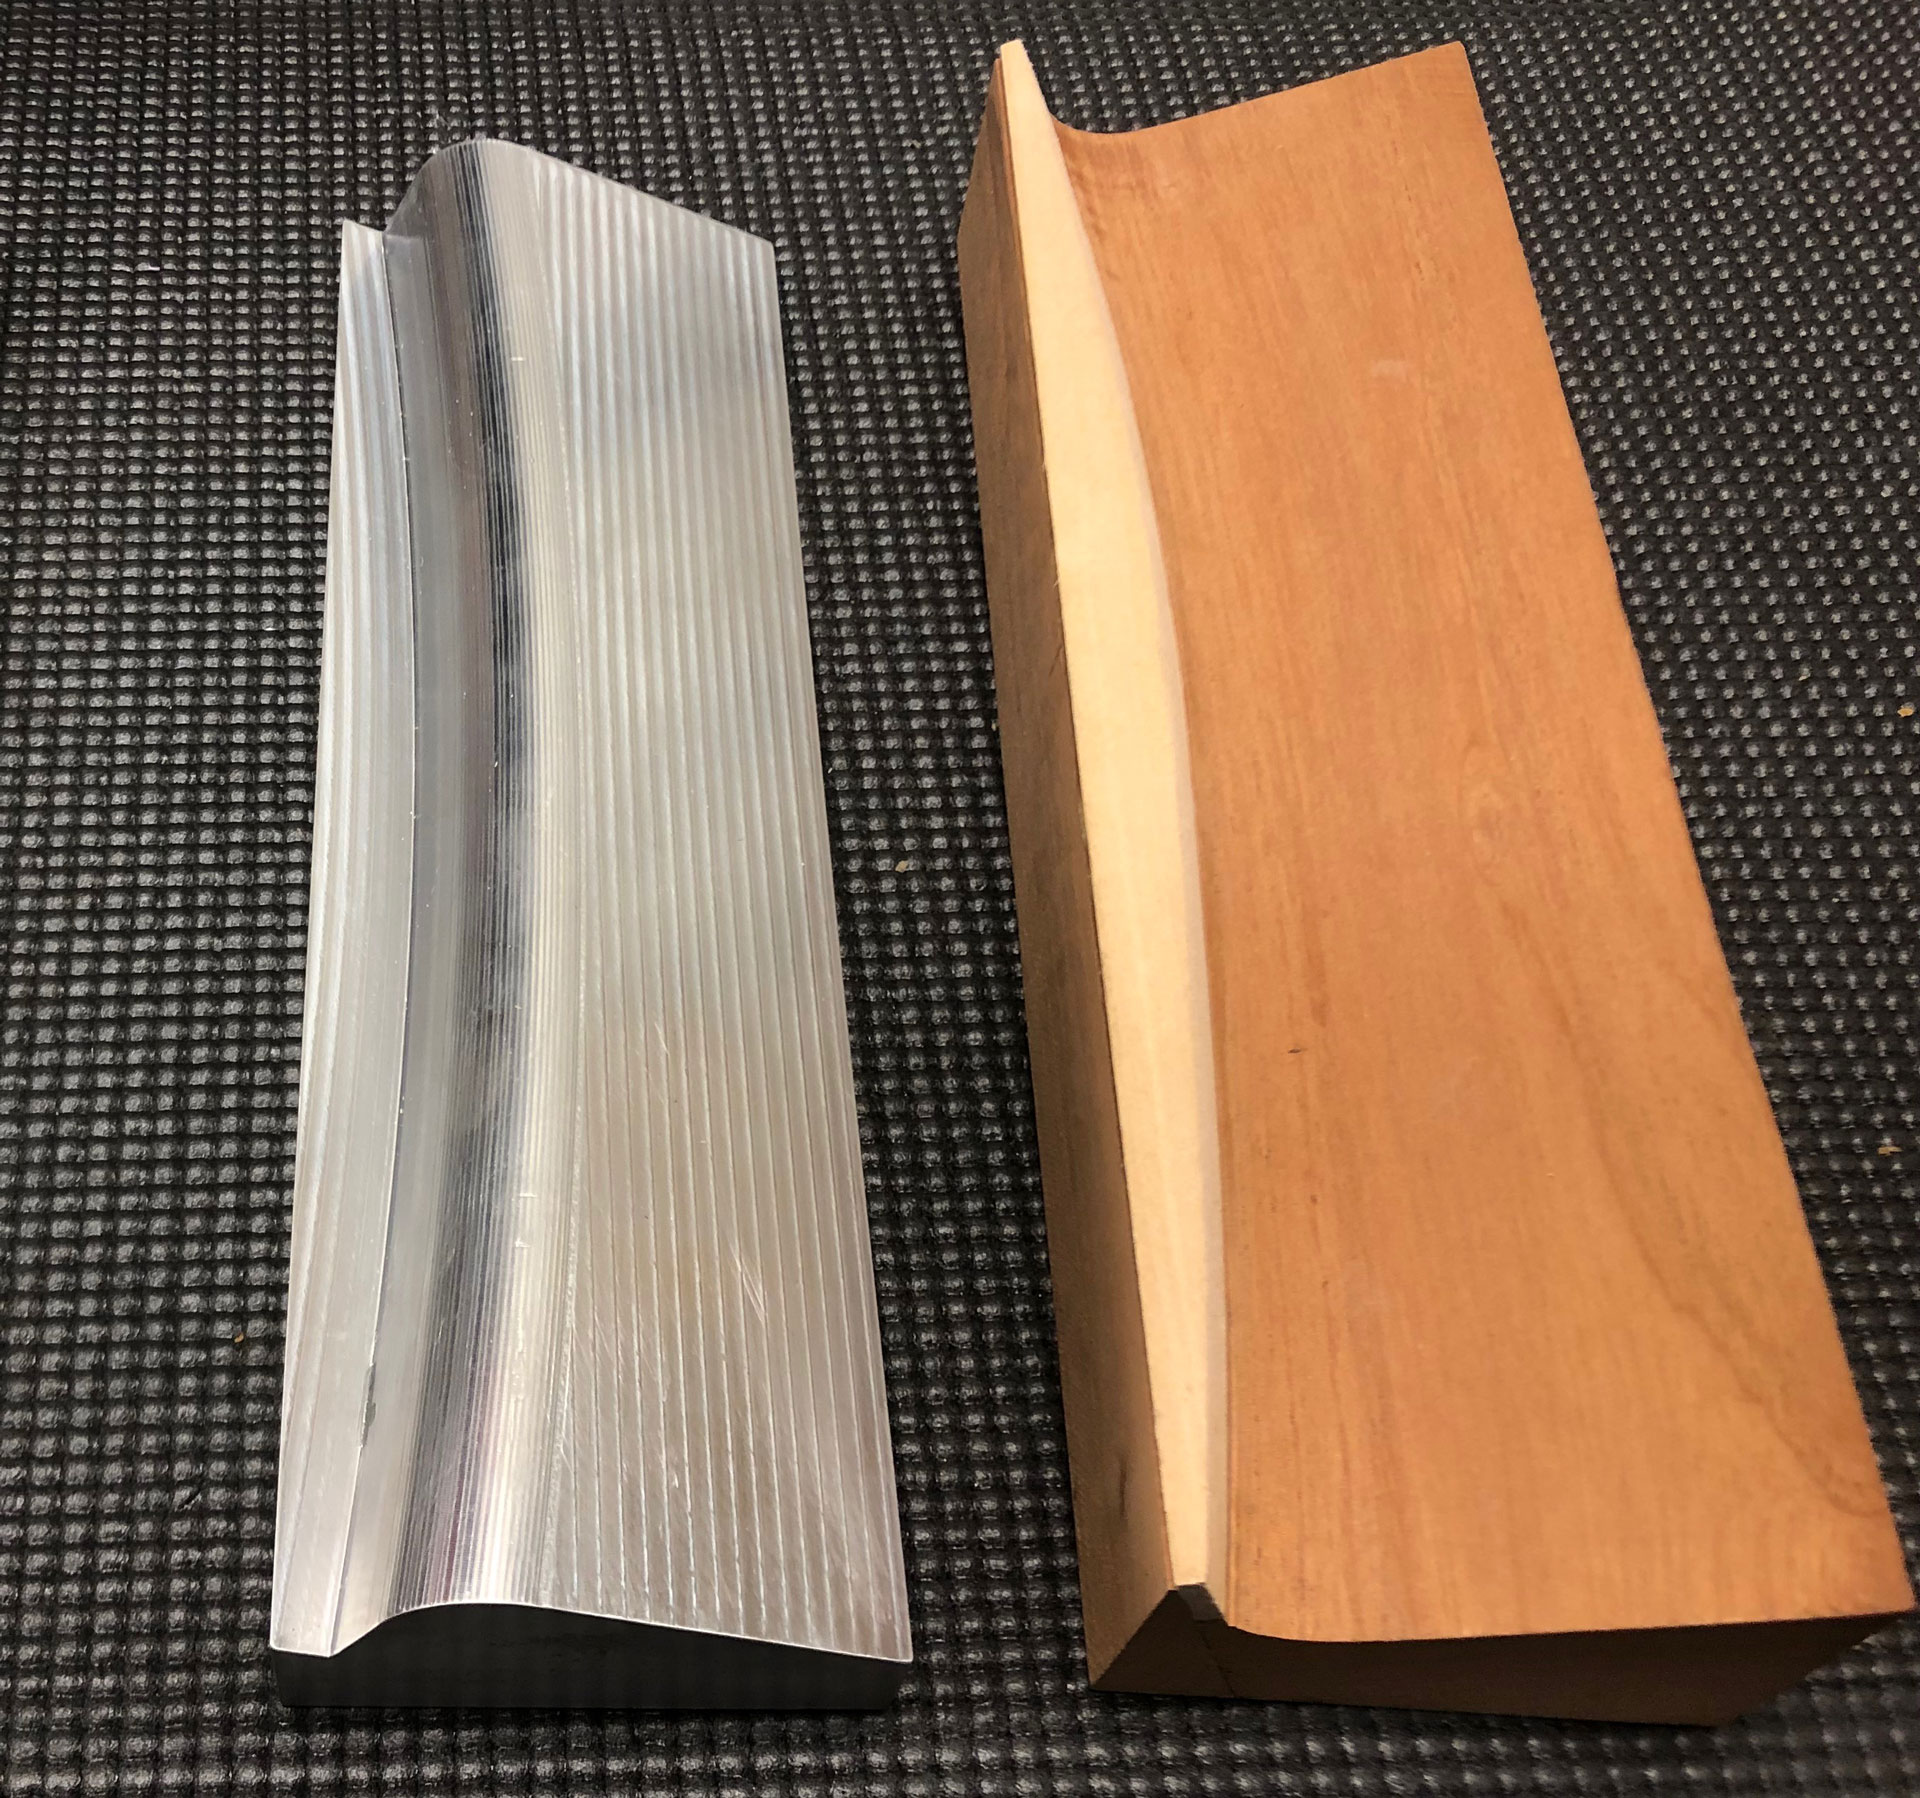 Hand-made wooden tool (right) analyzed, redesigned, and fabricated from aluminum (left)